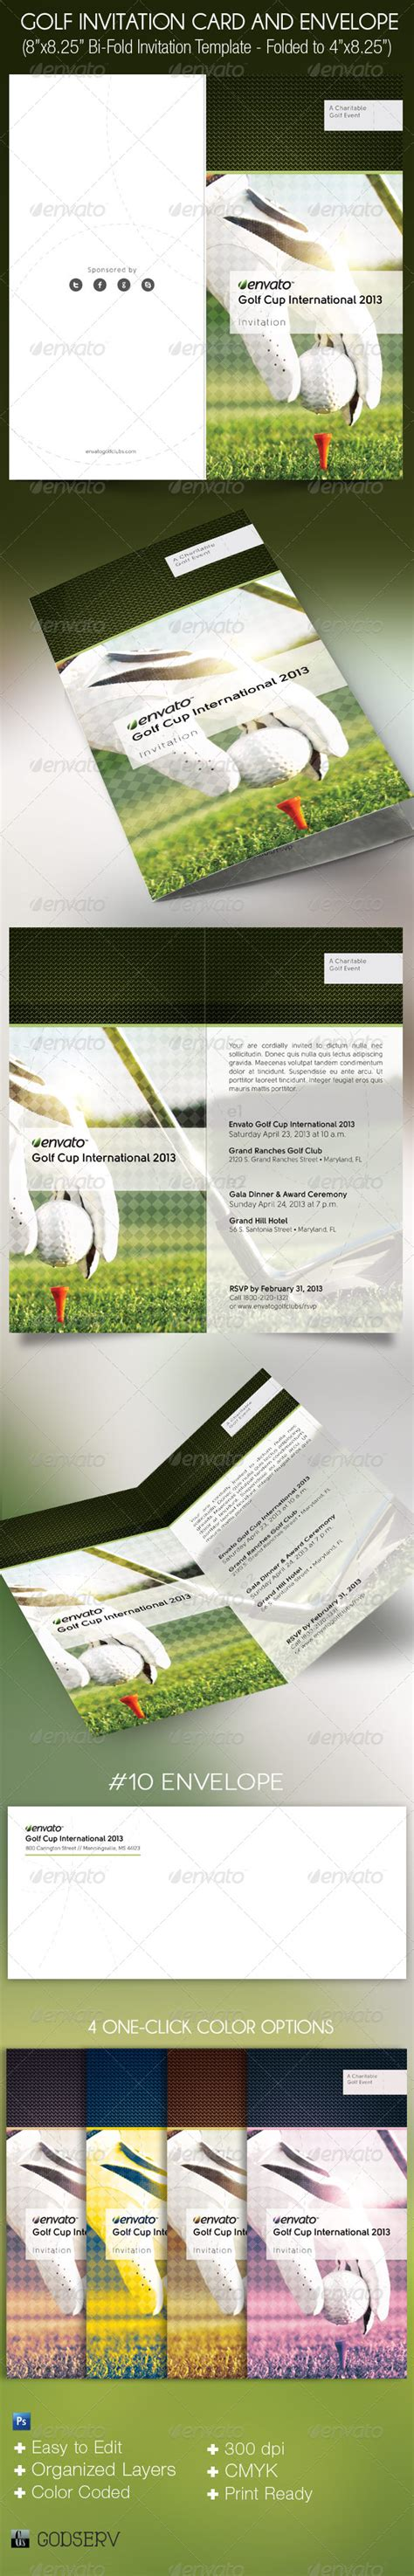 Golf Membership Card Template by Golf Invitation Card And Envelope Template By Godserv On